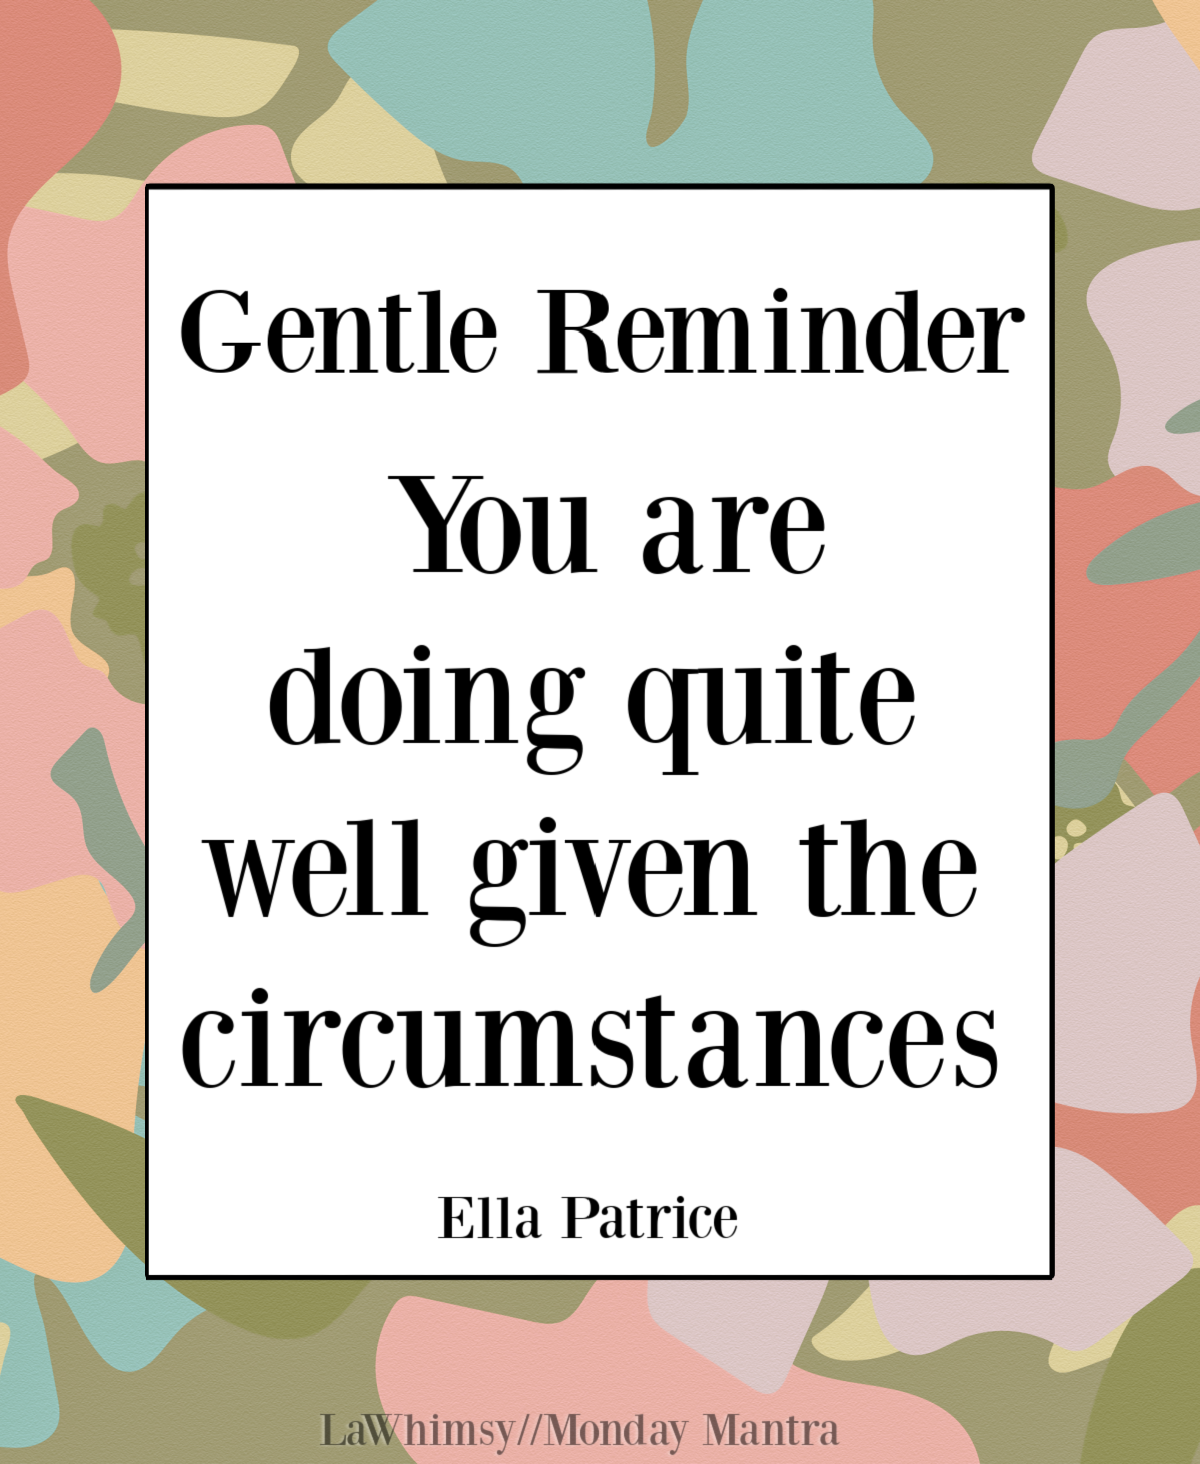 Gentle Reminder You are doing quite well given the circumstances Ella Patrice quote Monday Mantra 287 via LaWhimsy